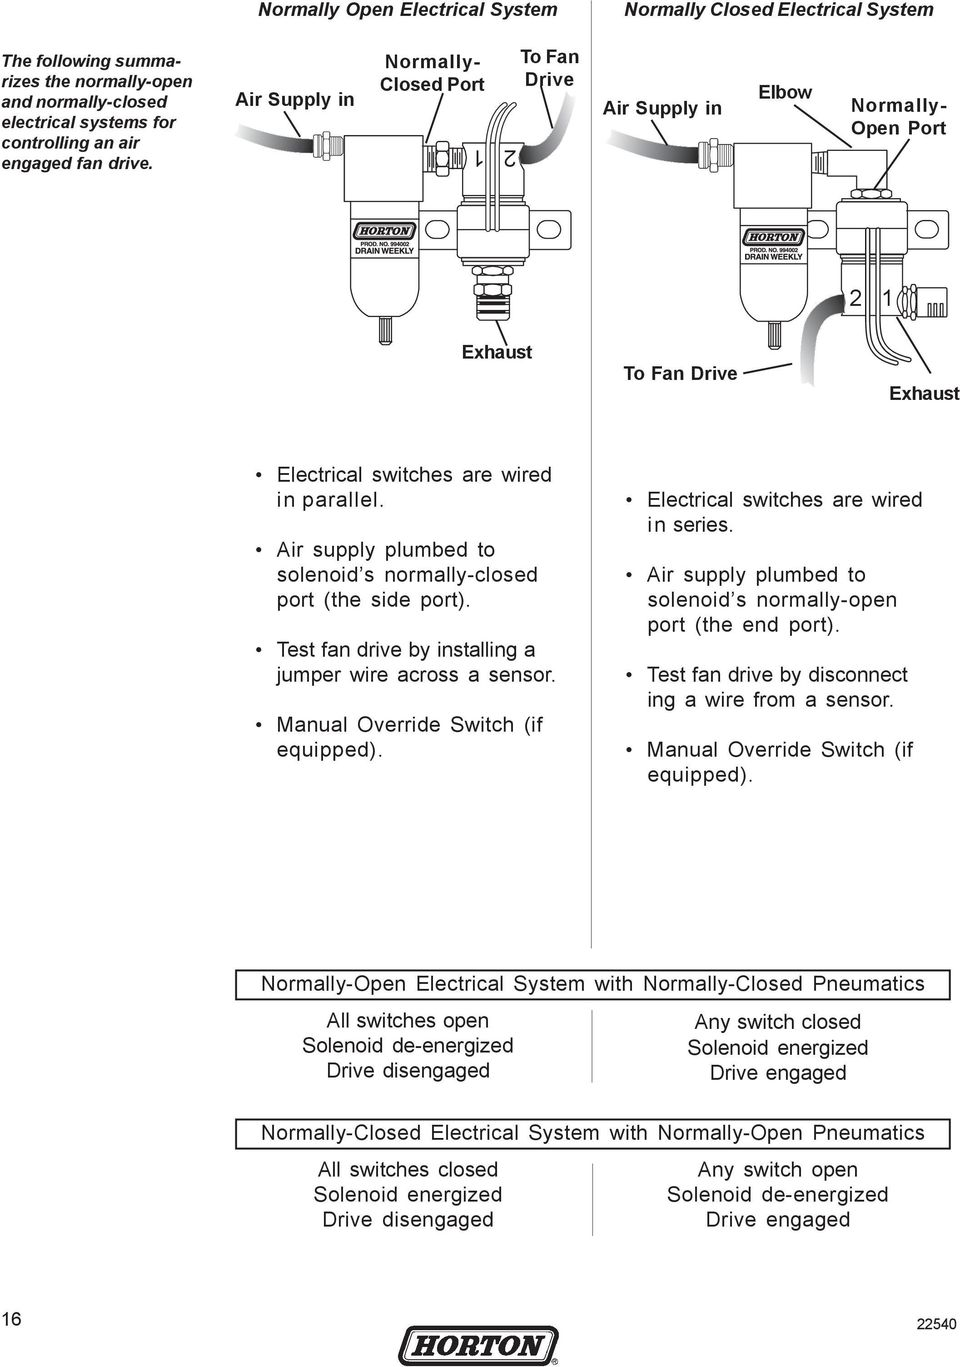 Heavy Duty Fan Drive Maintenance Training Manual Pdf Kenworth Engine Solenoid Wiring Diagram Air Supply Plumbed To S Normally Closed Port The Side